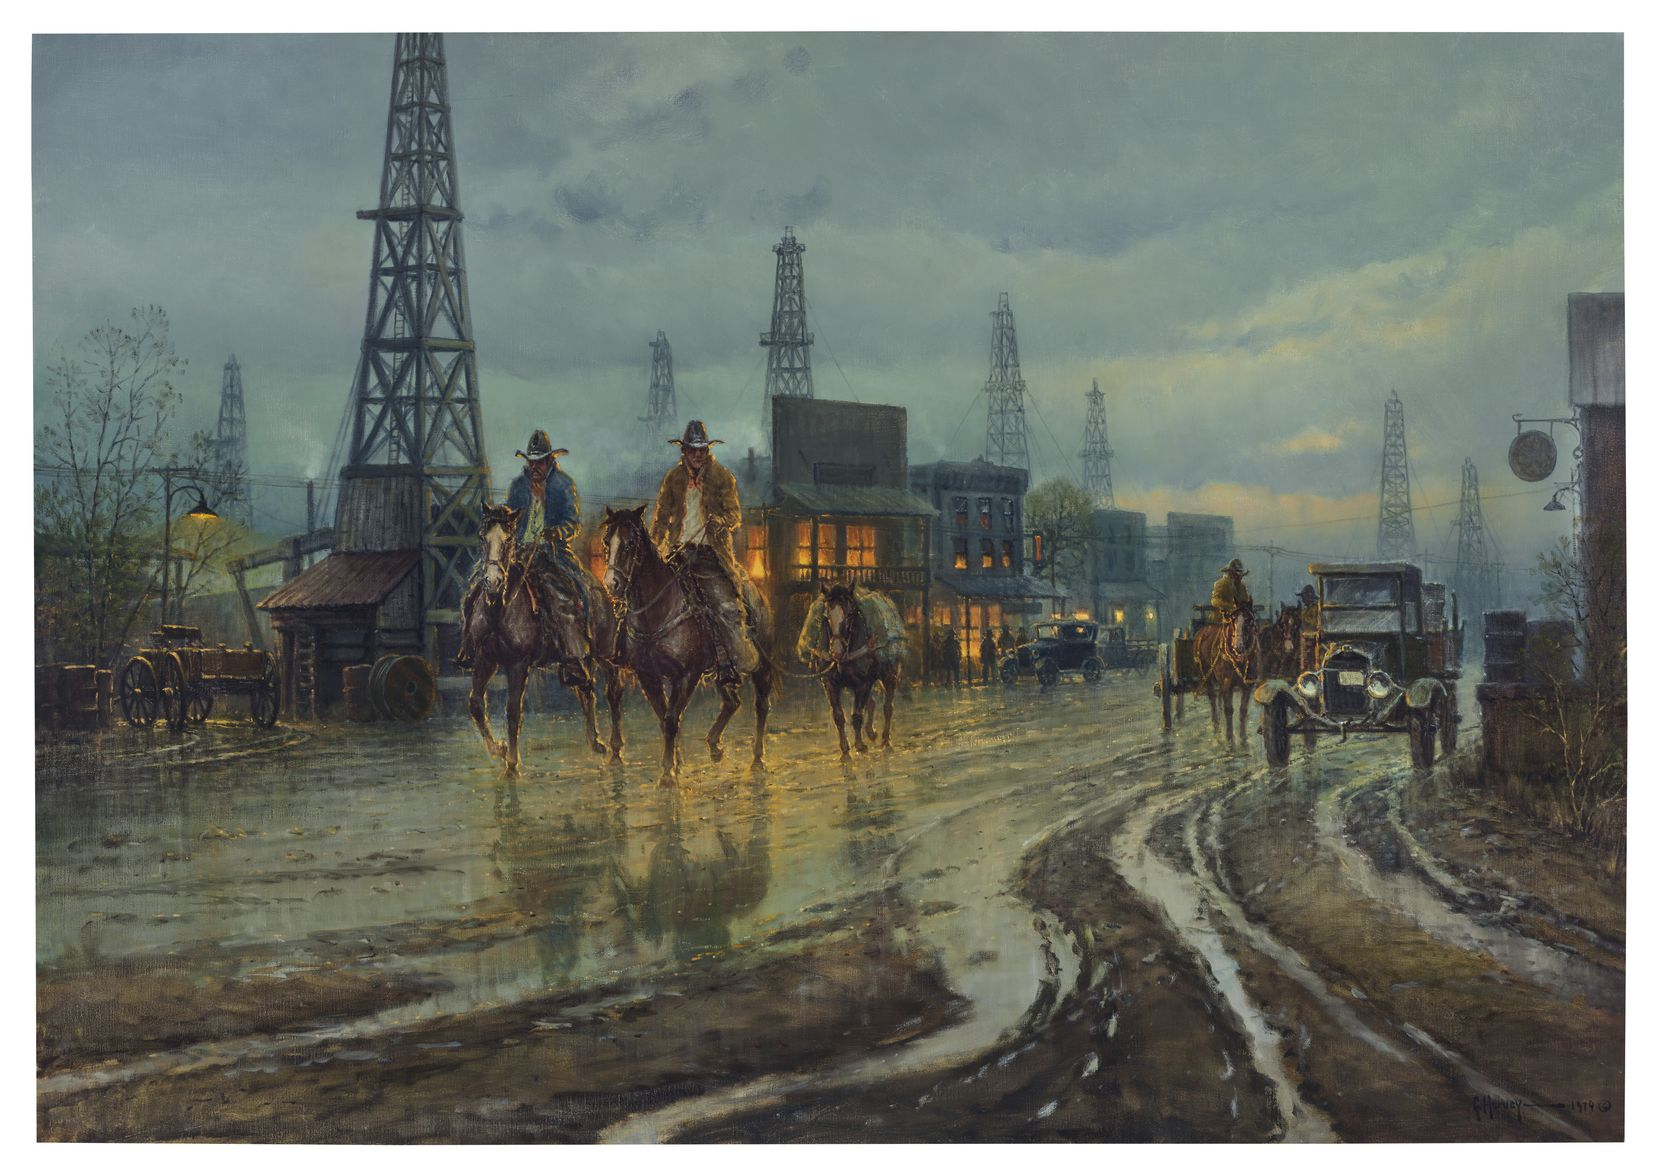 G. Harvey's Boomtown Drifters, painted in 1979, has an auction house estimate of $300,000 to $500,000. Pickens and Harvey became friends.